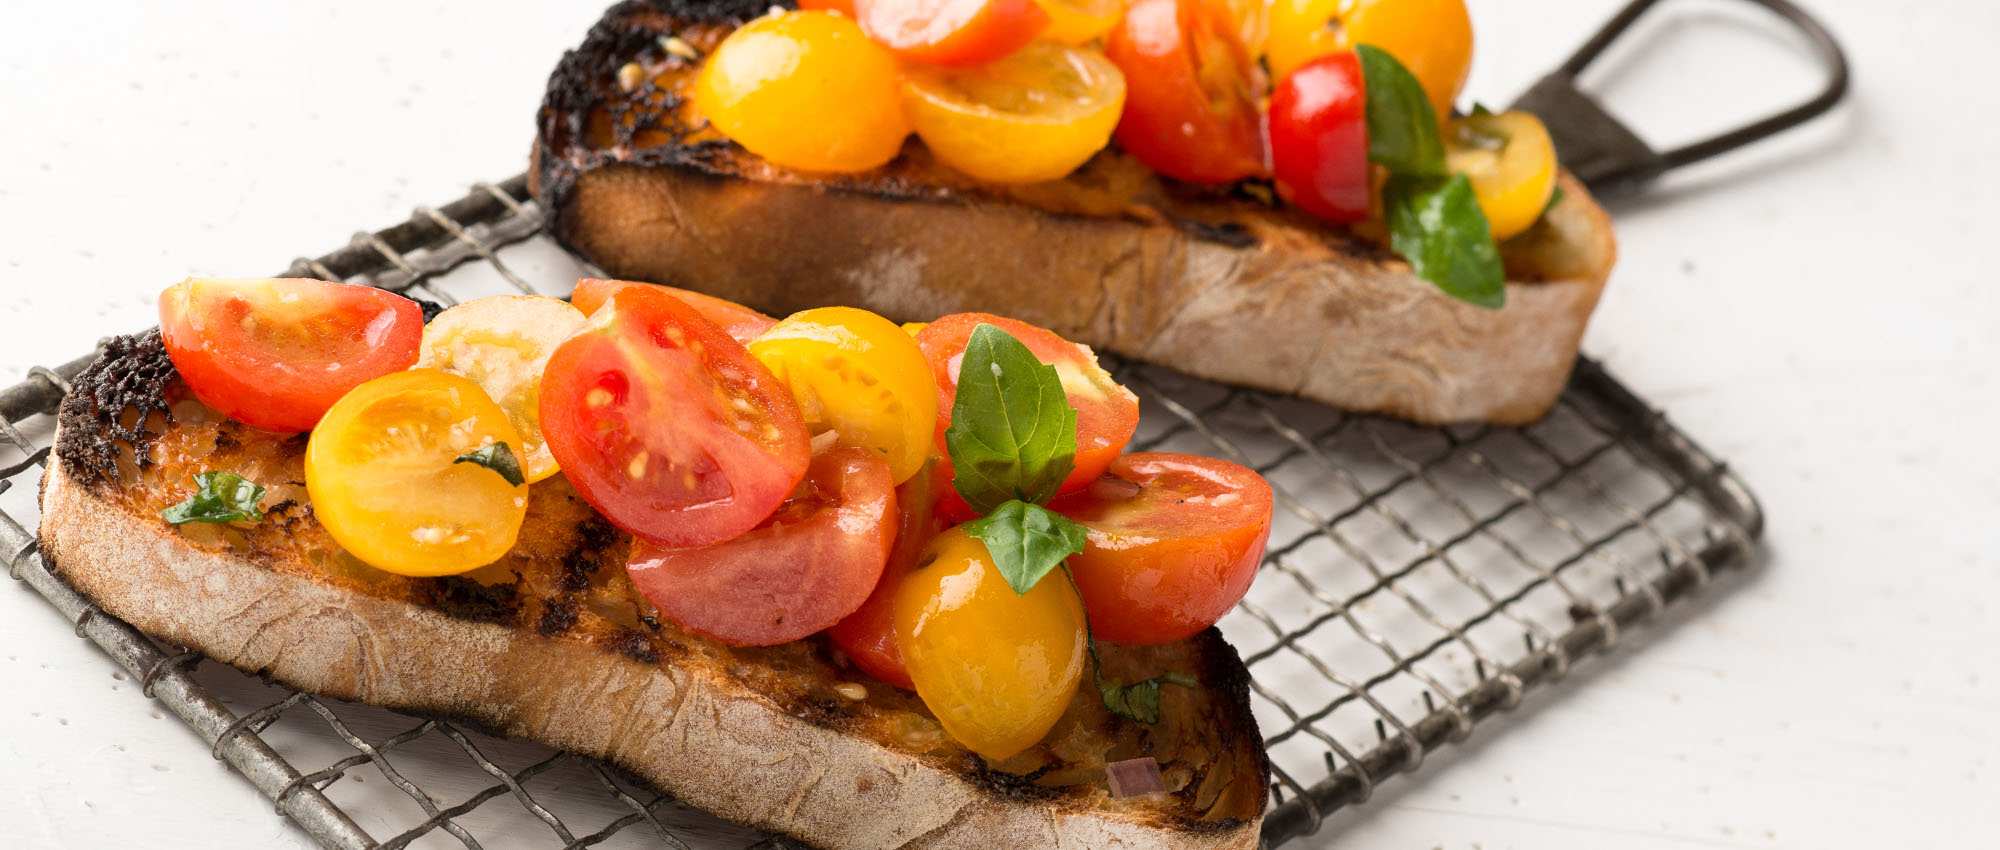 bread rubbed with garlic & olive oil, topped with fresh chopped tomato & basil